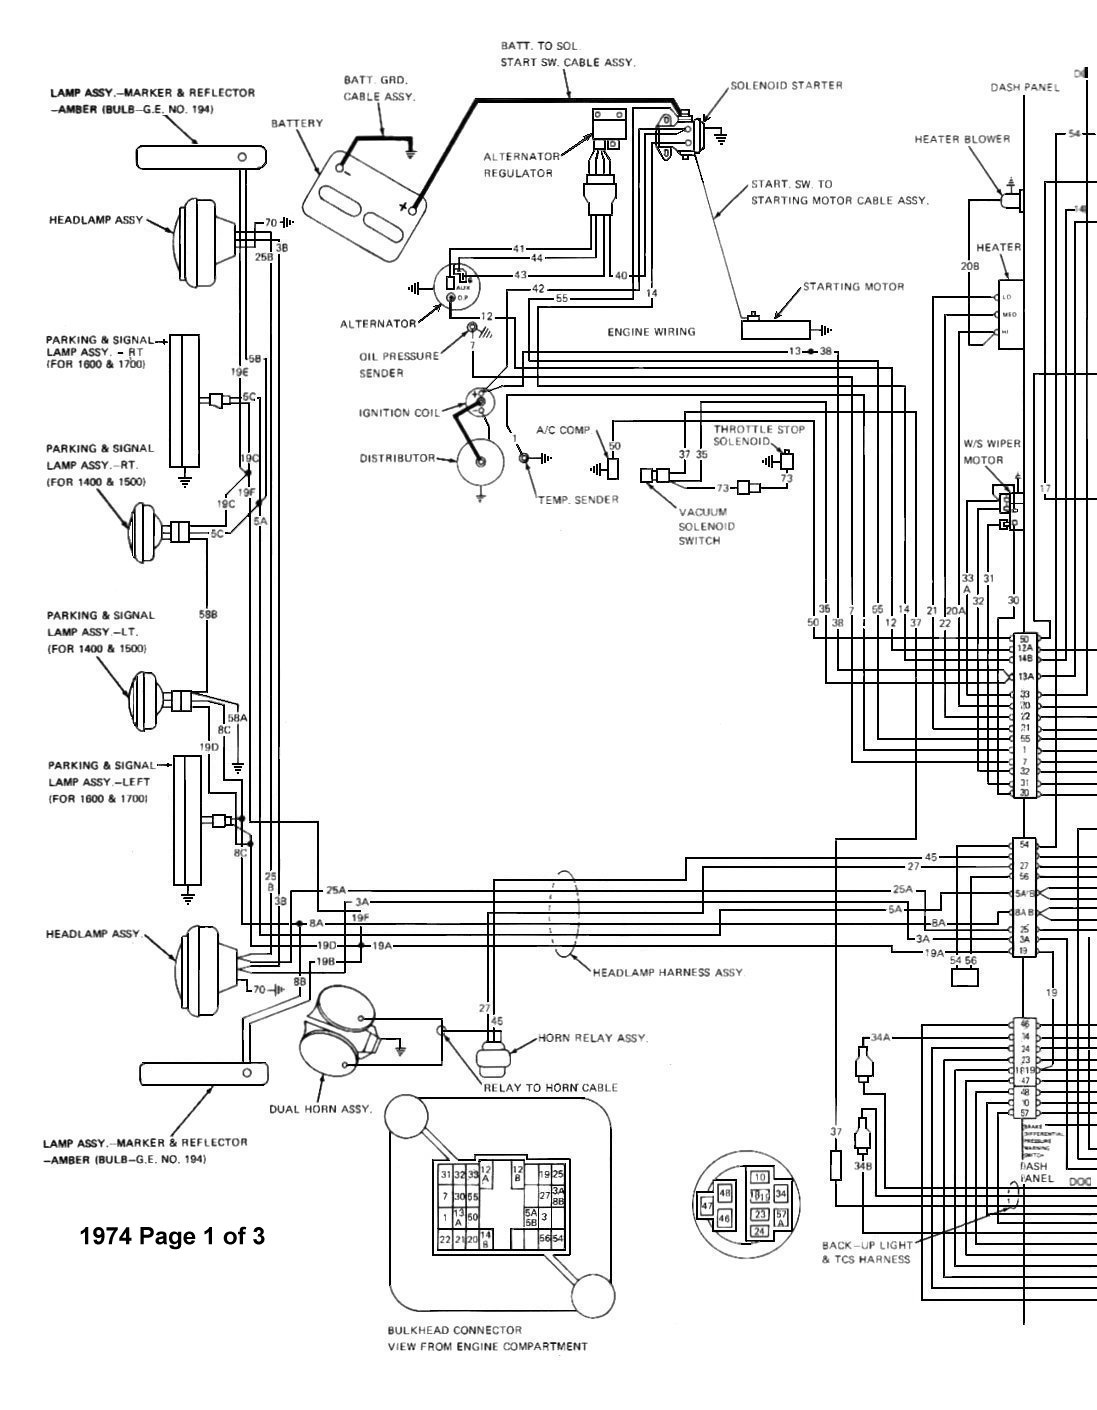 82 jeep cj7 wiper motor wiring diagram 1978 jeep wagoneer wiring diagram - somurich.com